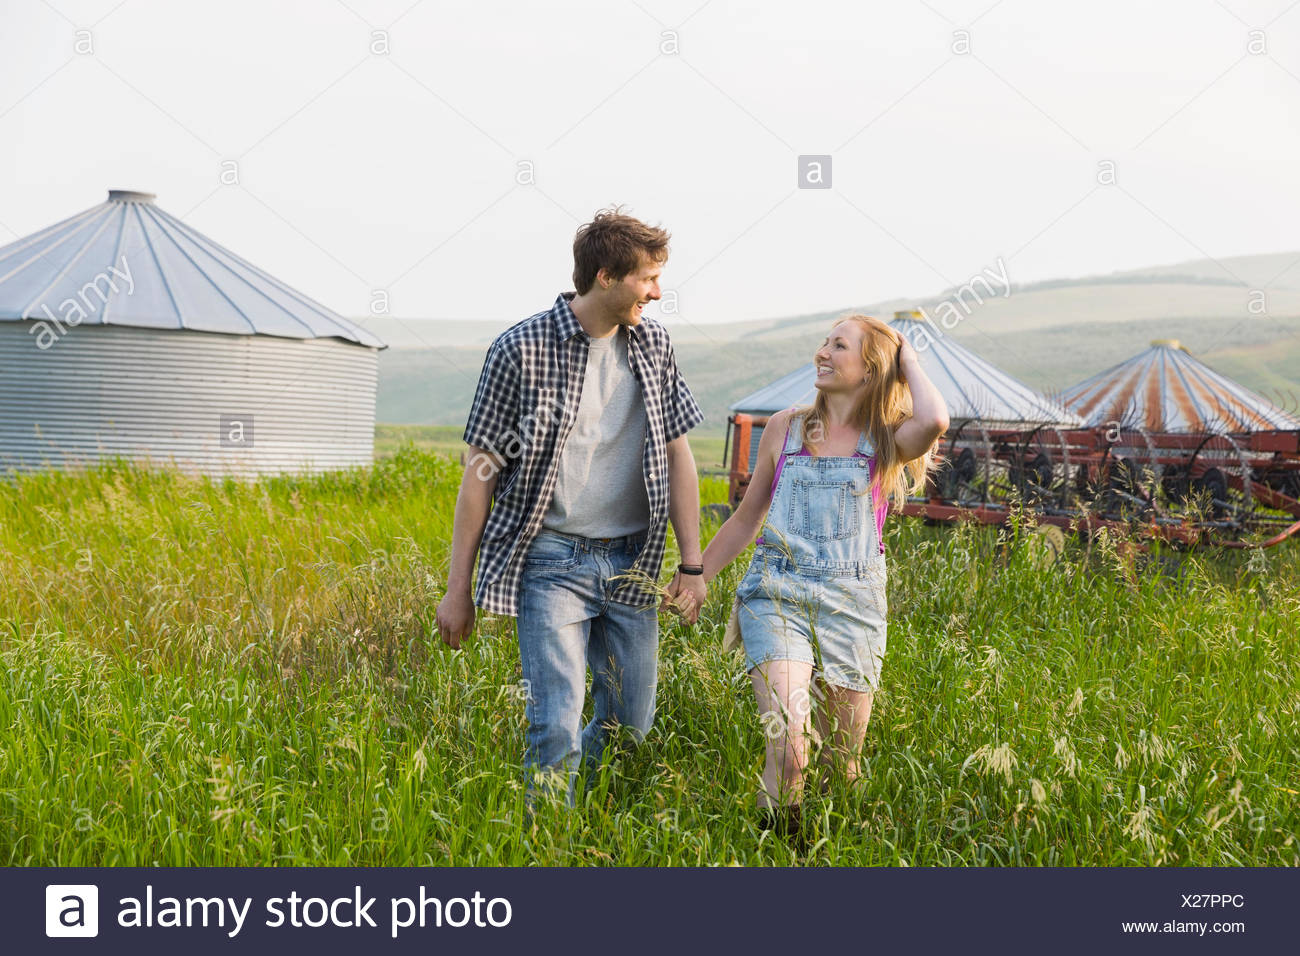 Couple holding hands and walking in rural field Photo Stock